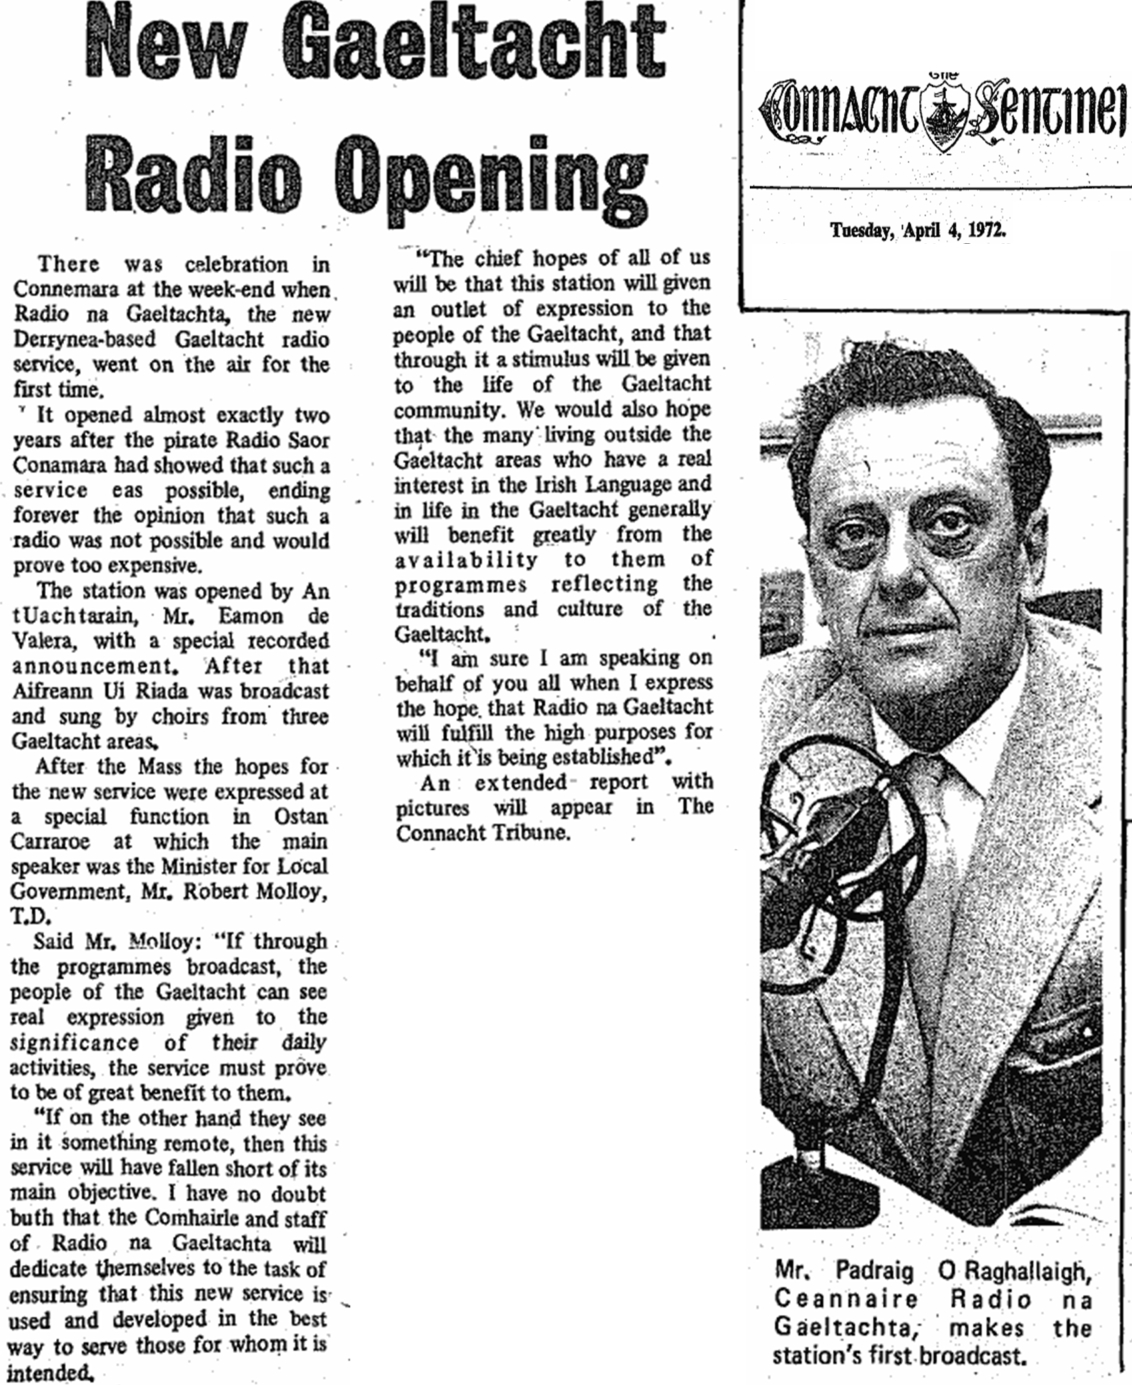 New Gaeltacht radio opening was a headline from The Connacht Sentinel dated April 4th 1972